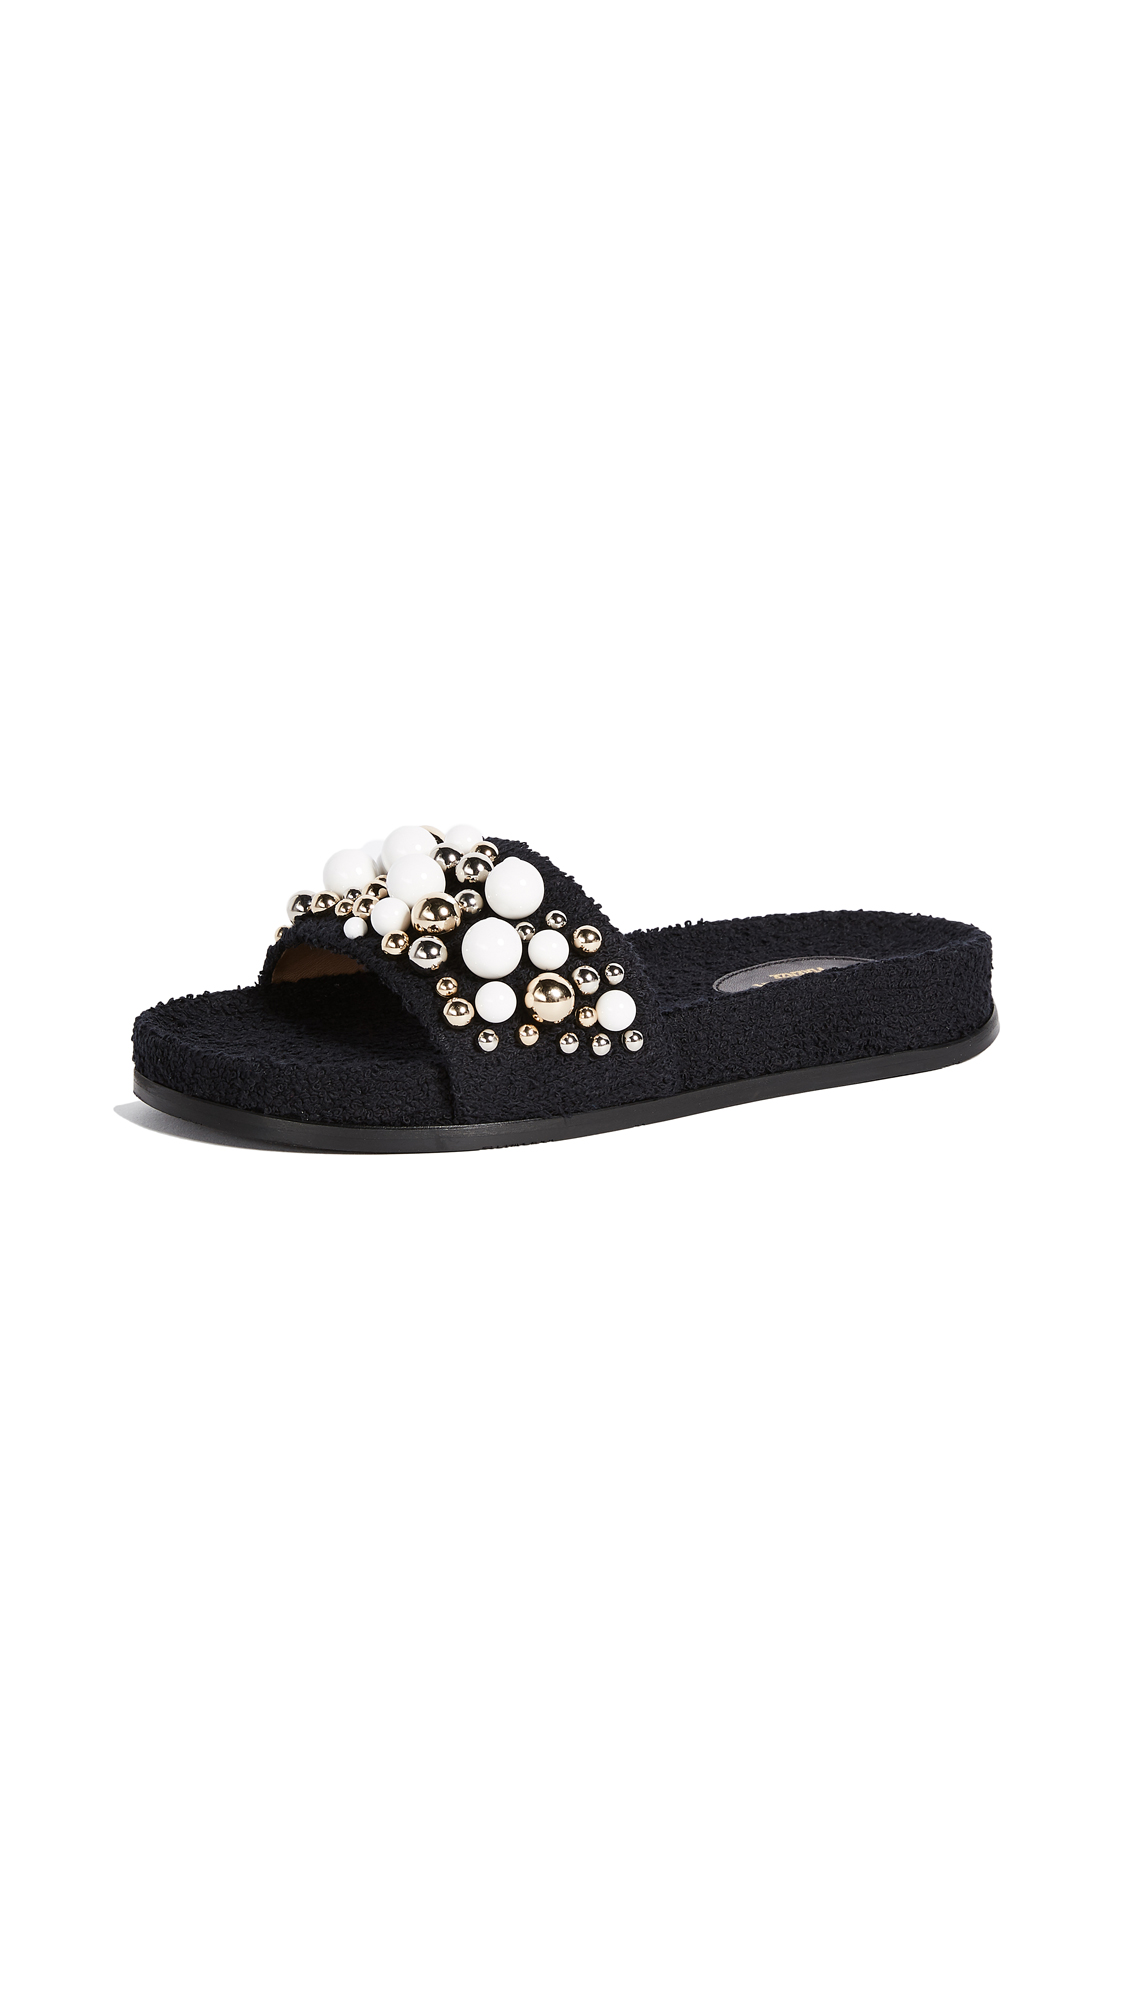 Aquazzura Bon Bon Pool Slides - Black